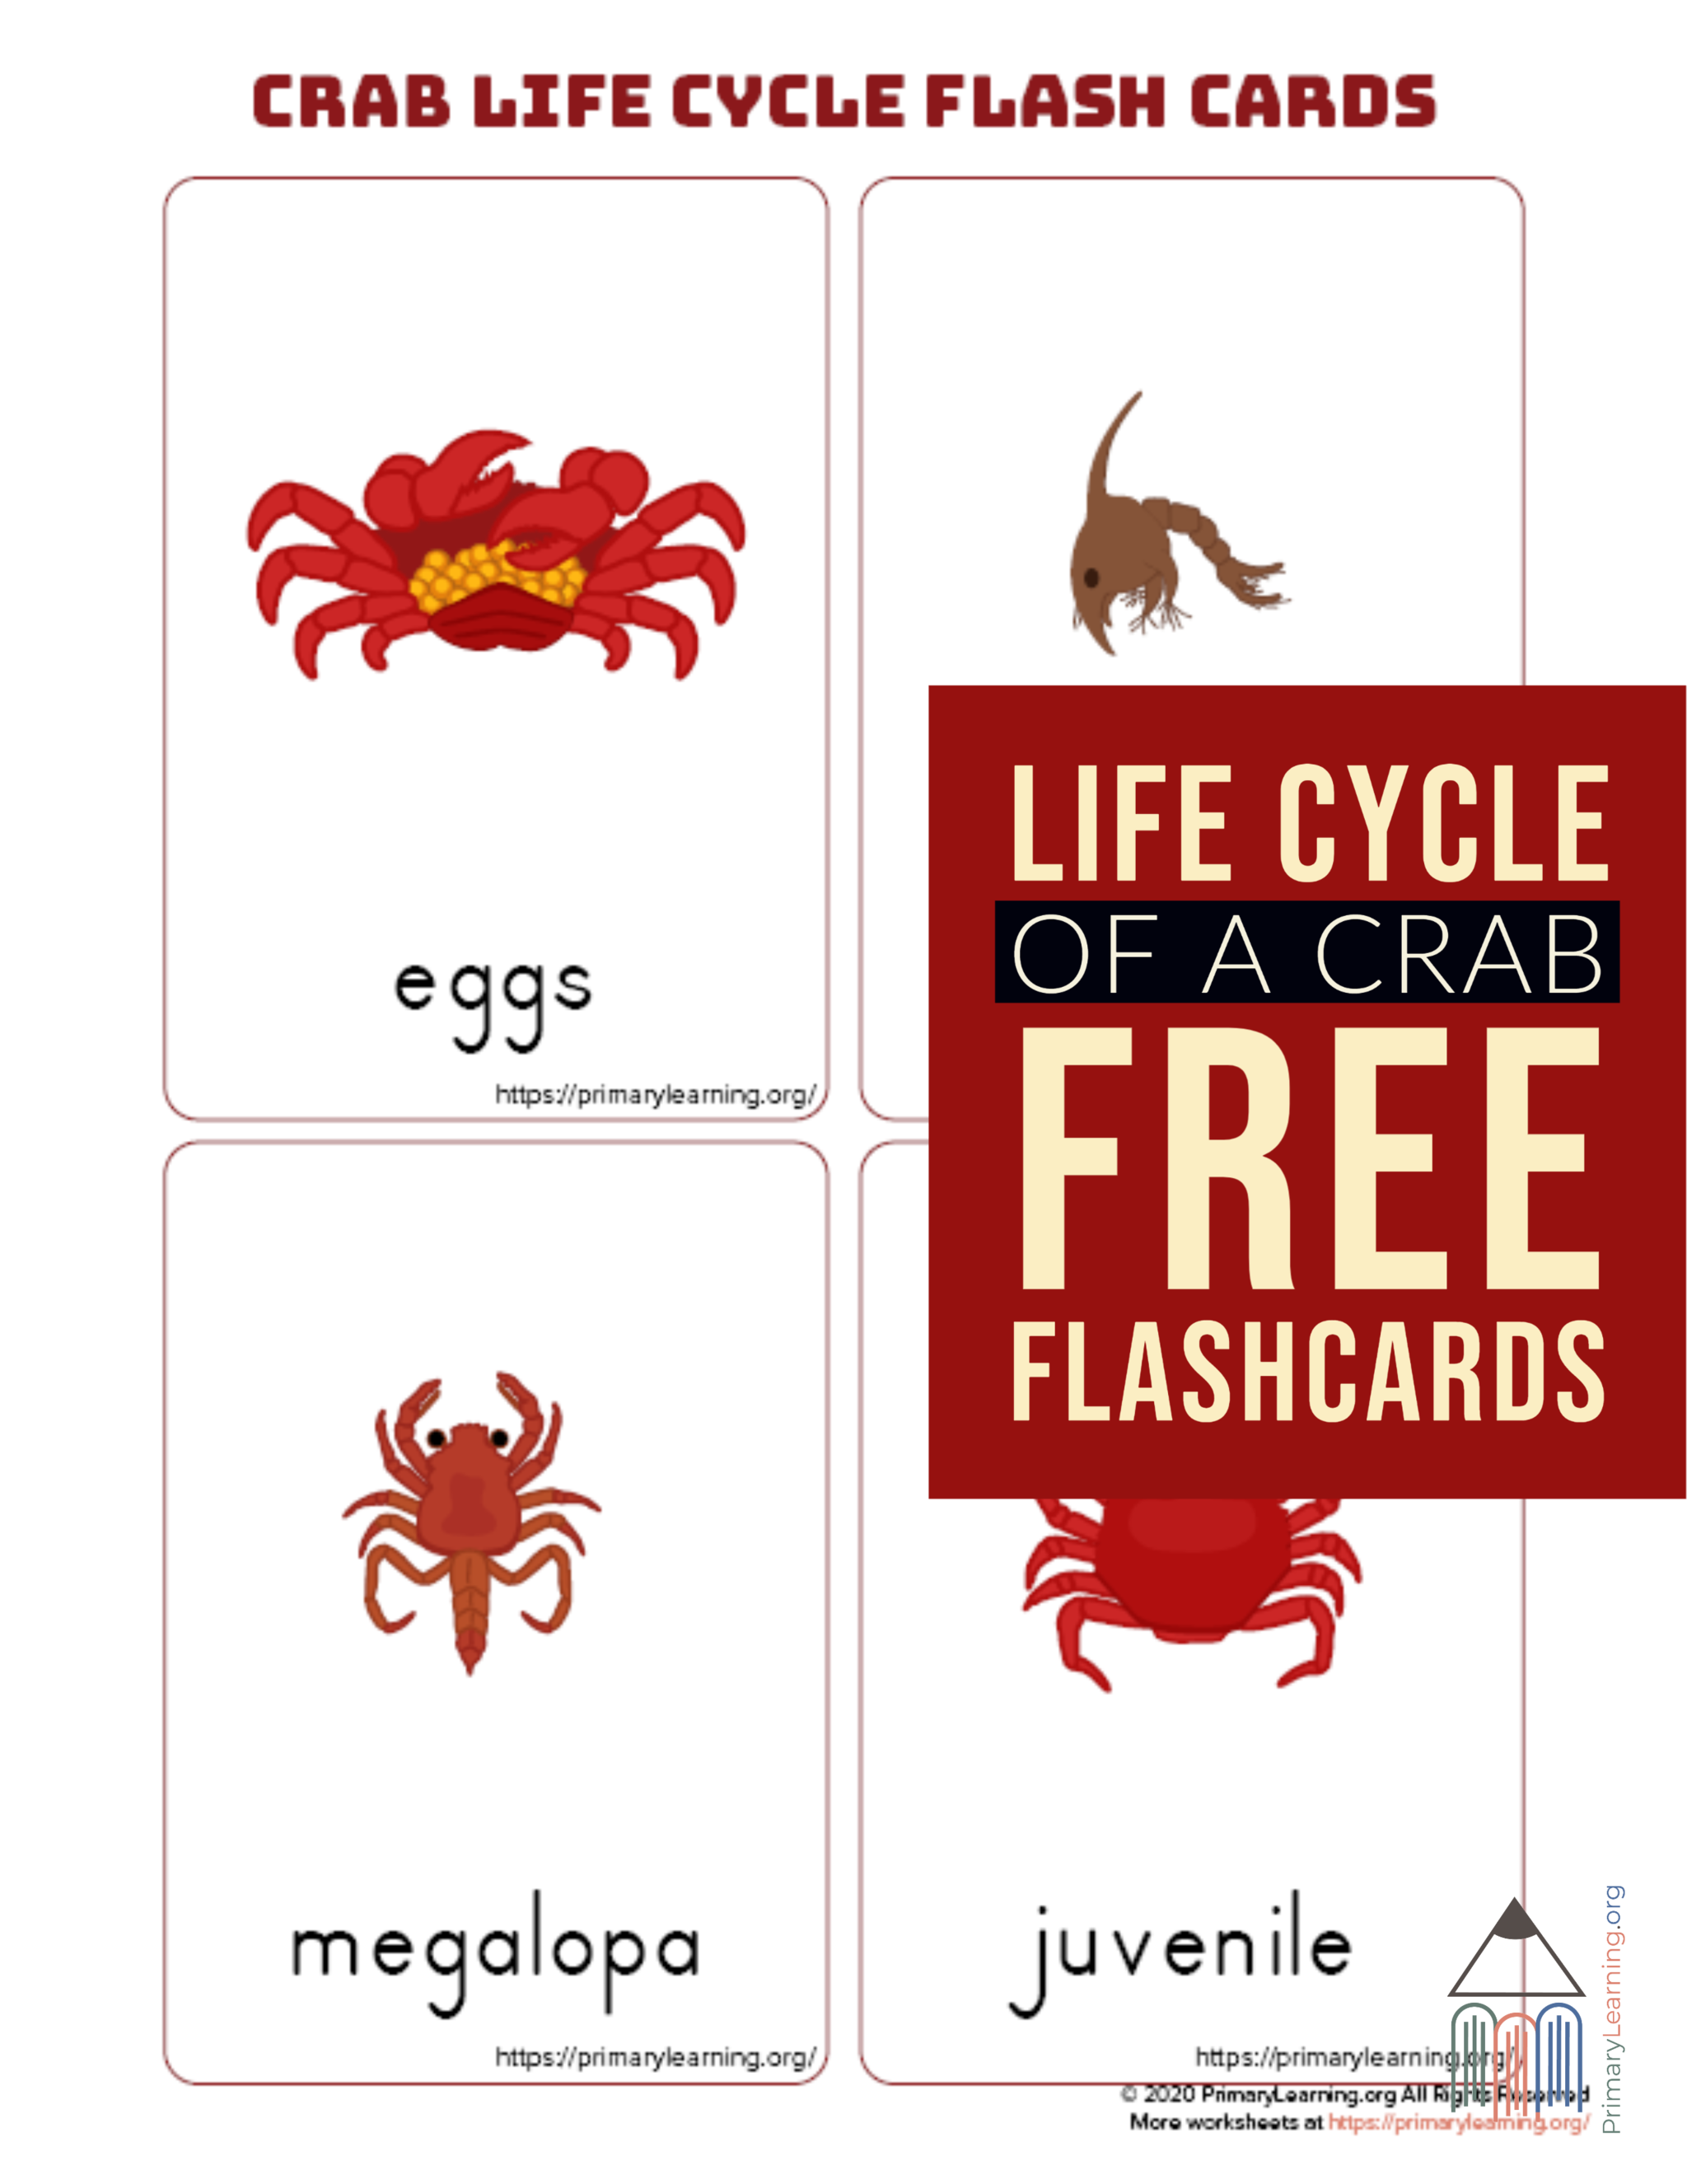 Crab Life Cycle Flashcards